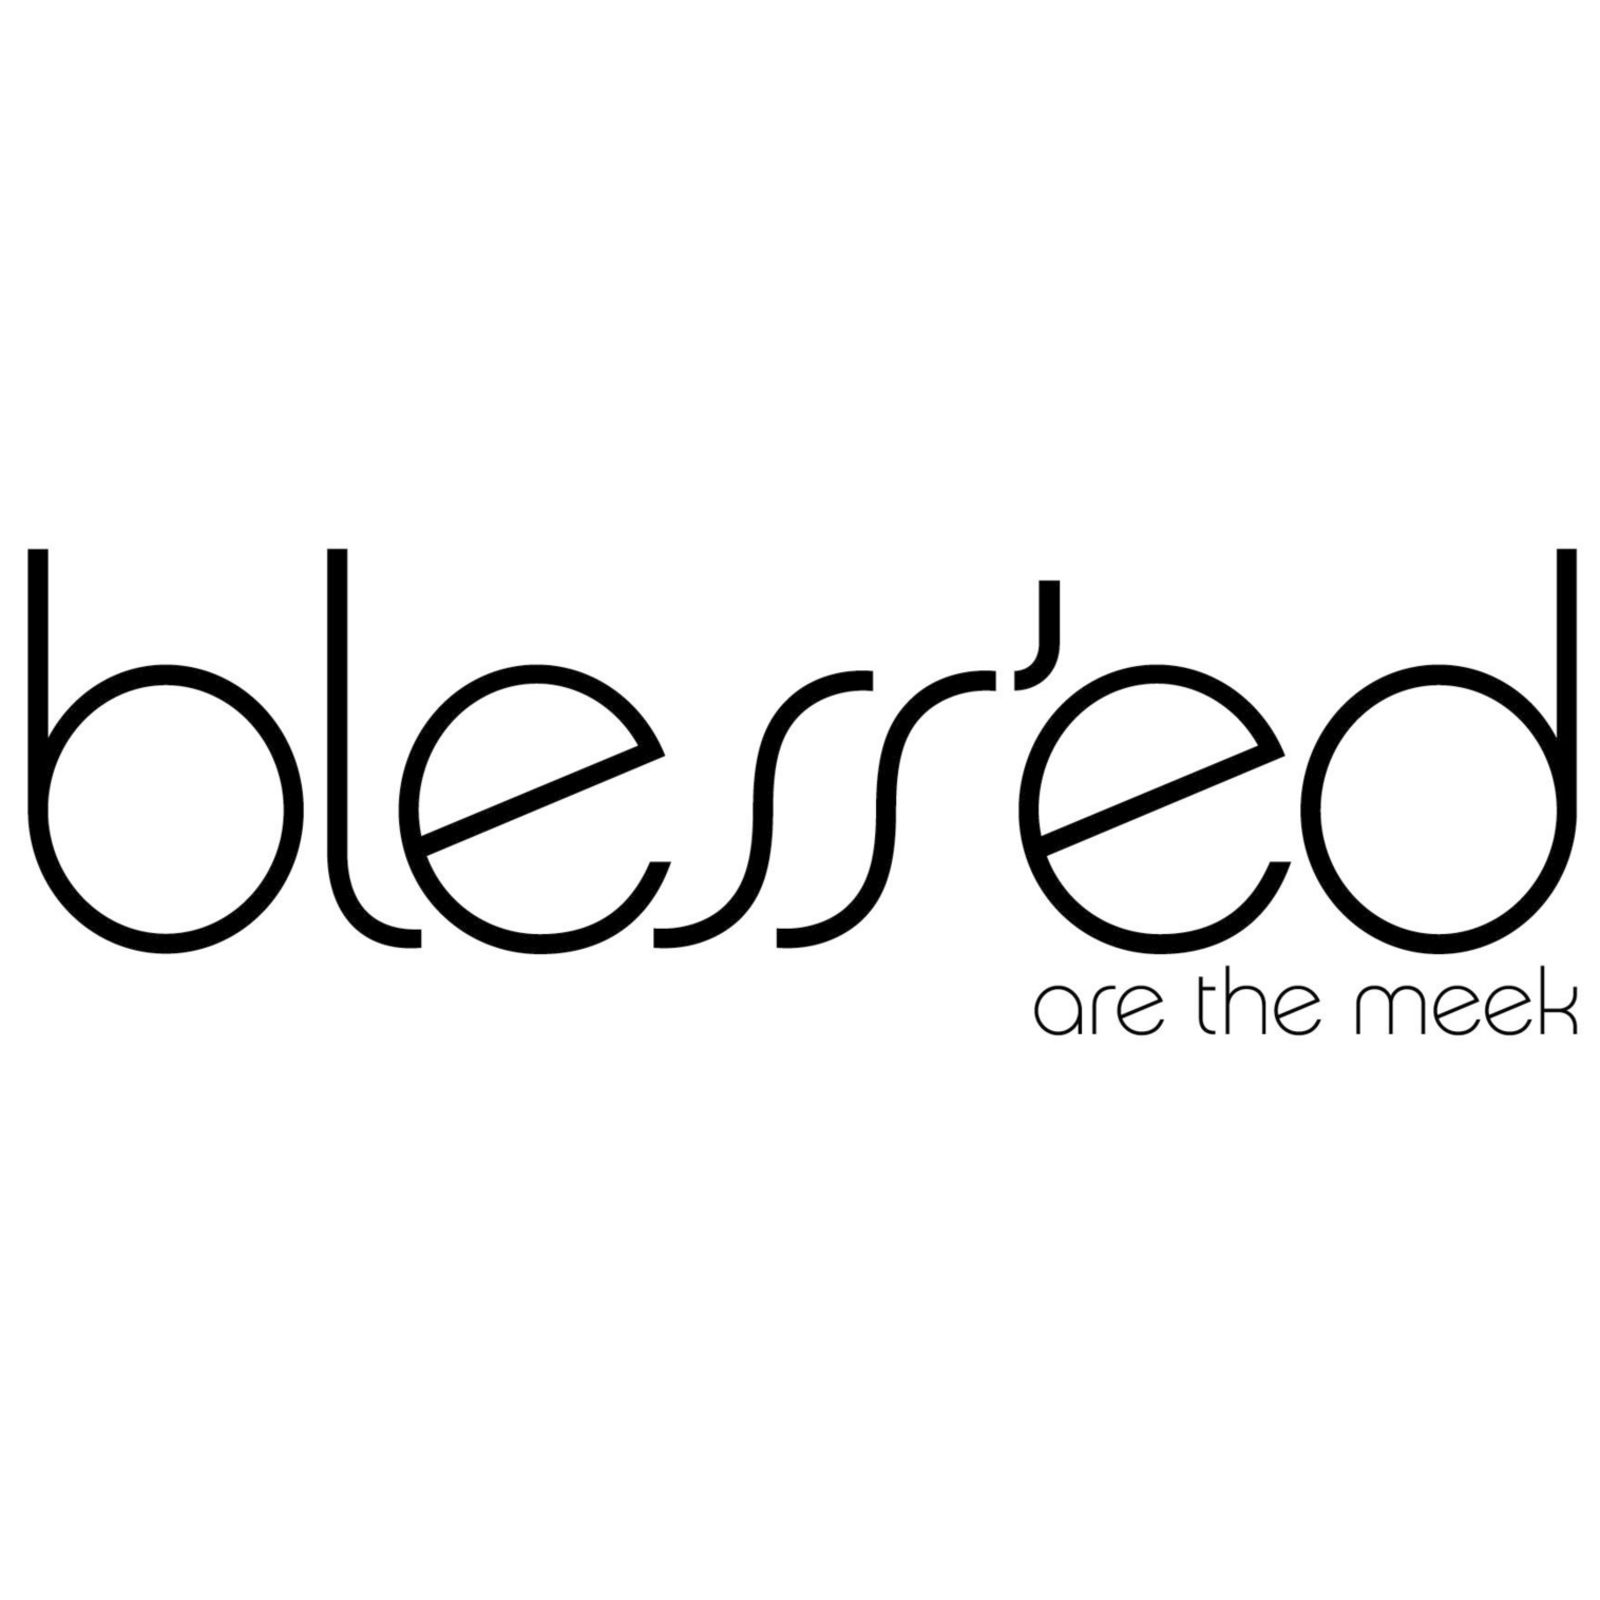 bless'ed are the meek